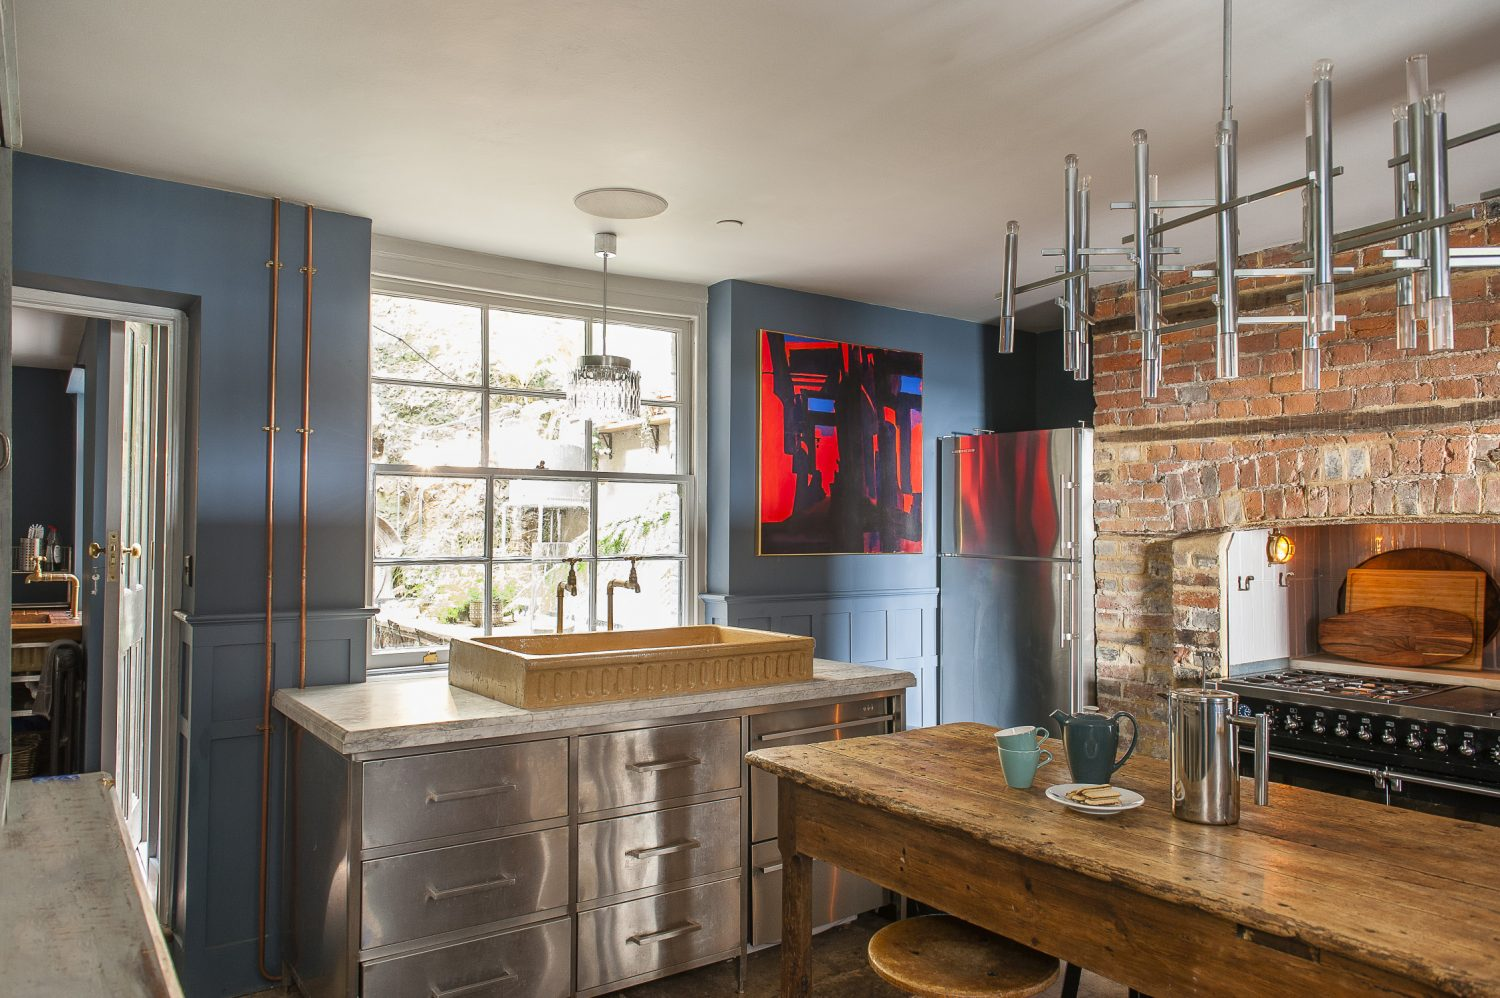 At the heart of the kitchen are a marble-topped stainless steel unit that Shaun had made to house the old stone sink and an 18th century oak refectory table